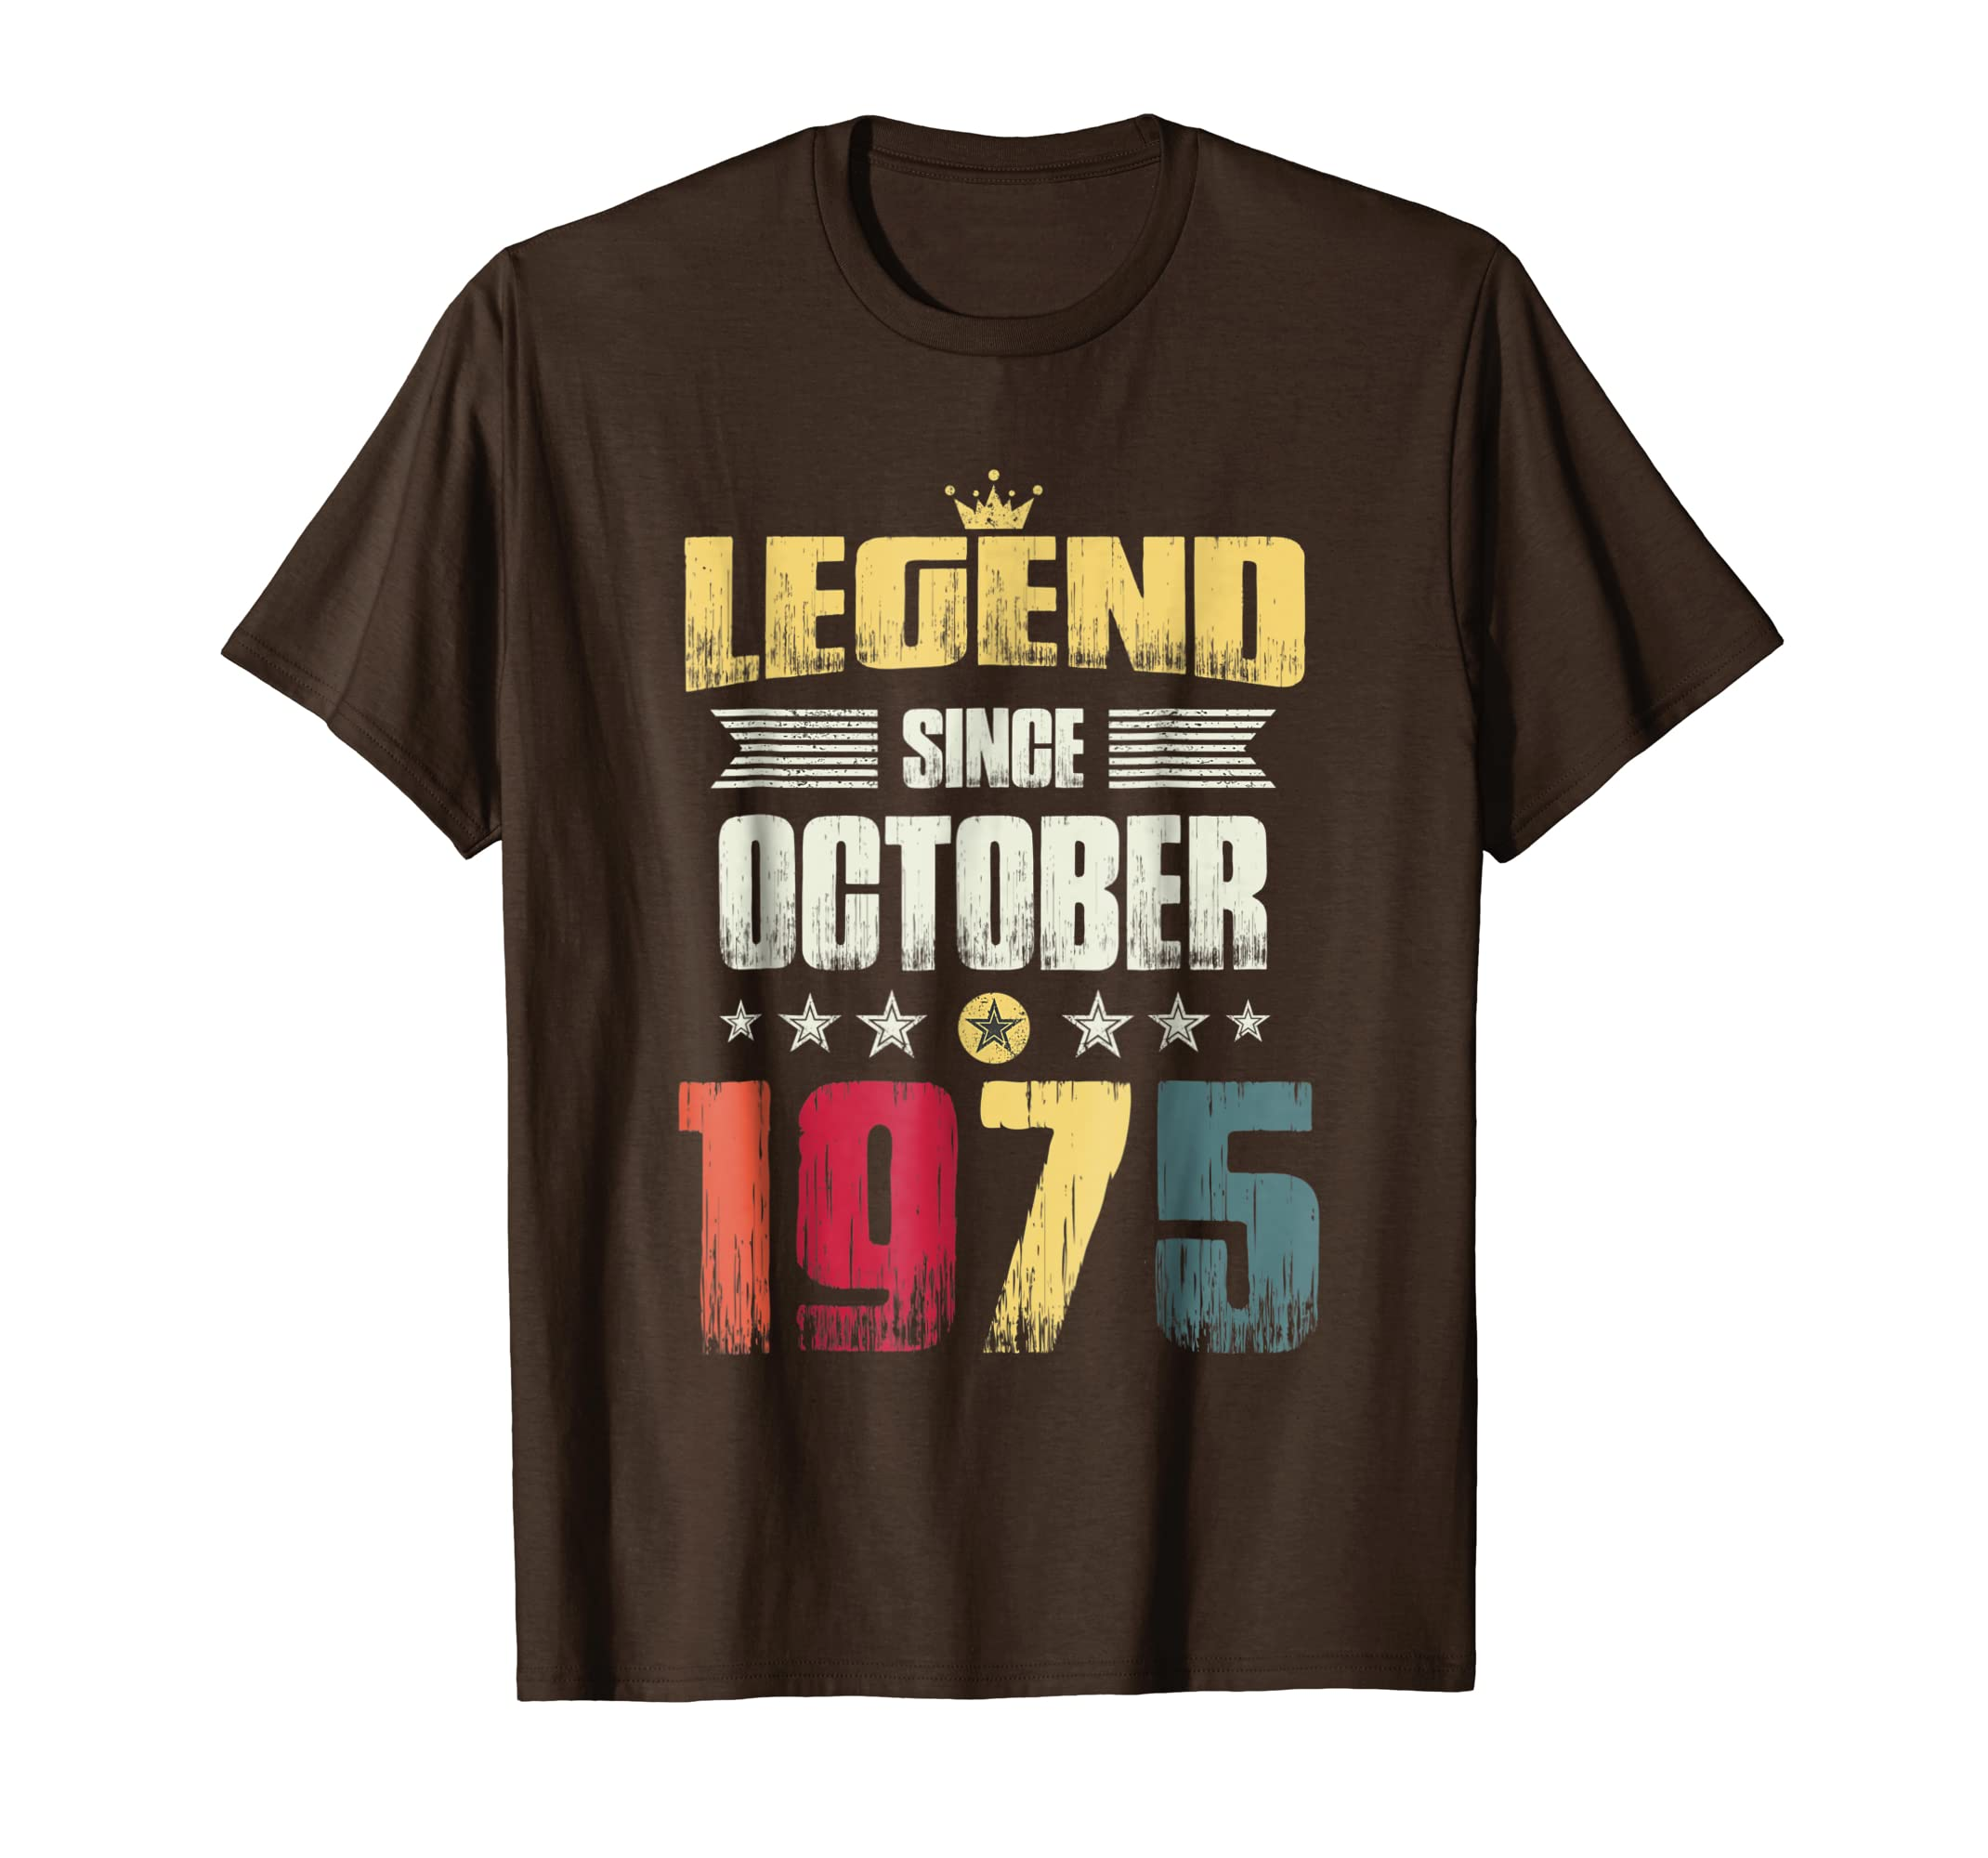 43rd Birthday Party Gift Shirt, Legend Since October 1975